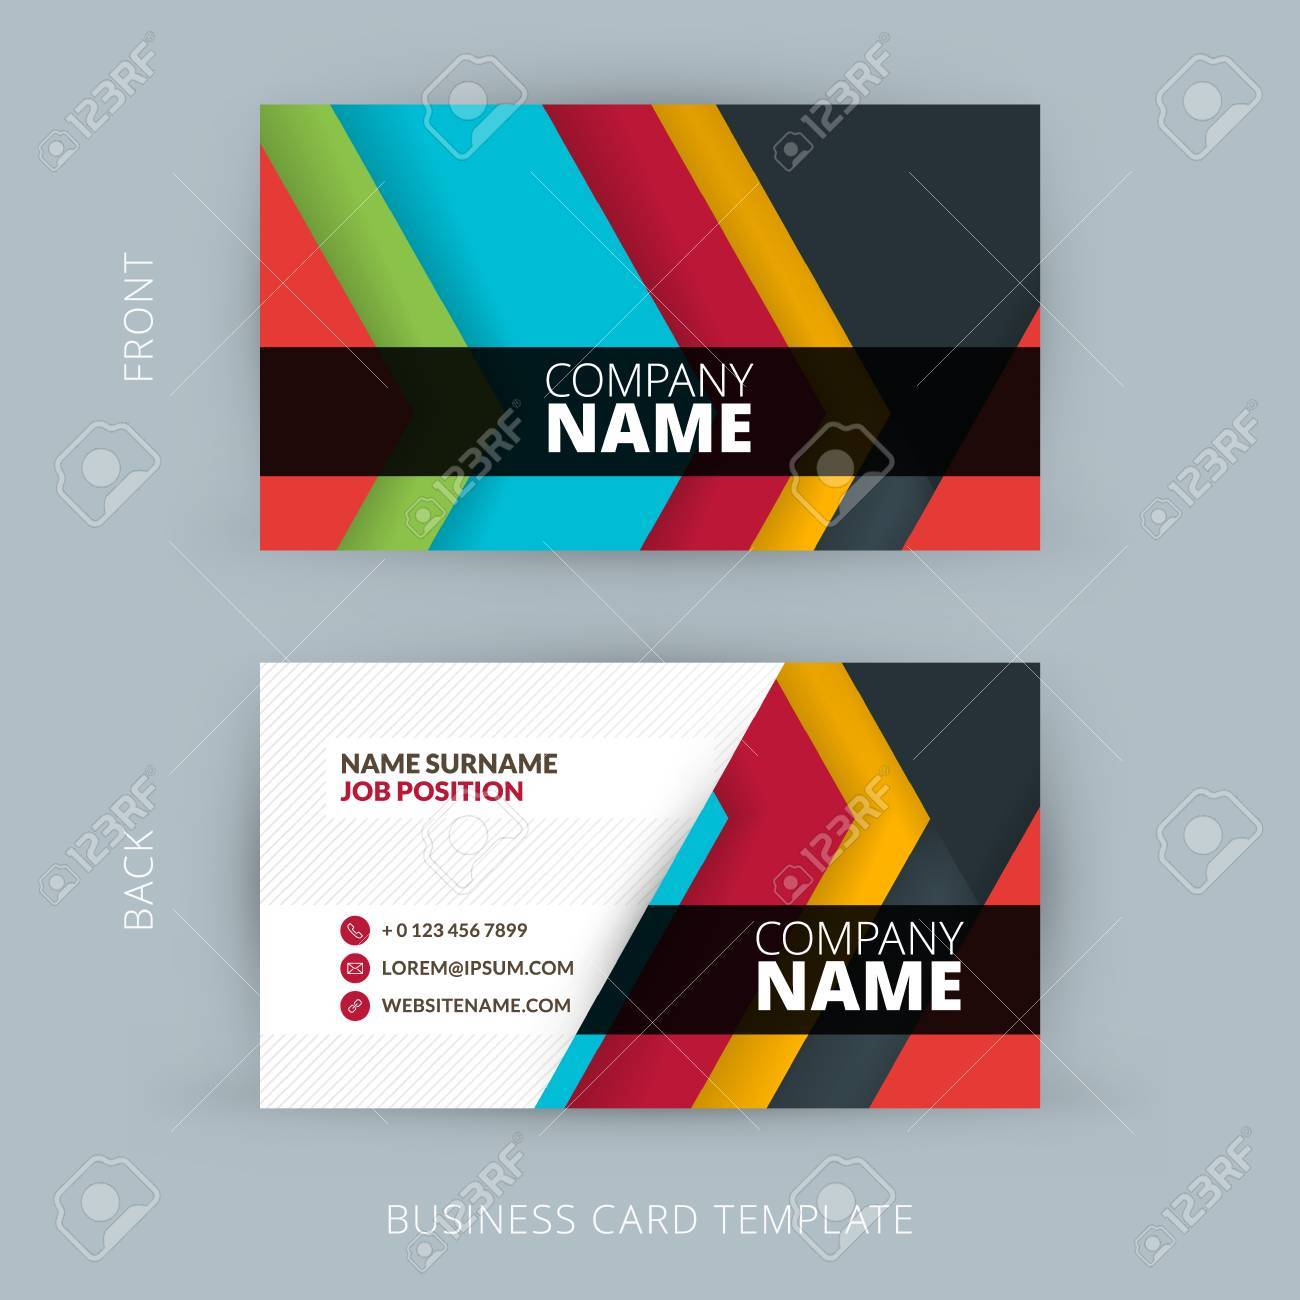 Colorful images business cards images free business cards colorful images business cards images free business cards business card template design backgrounds business sheet templates magicingreecefo Choice Image